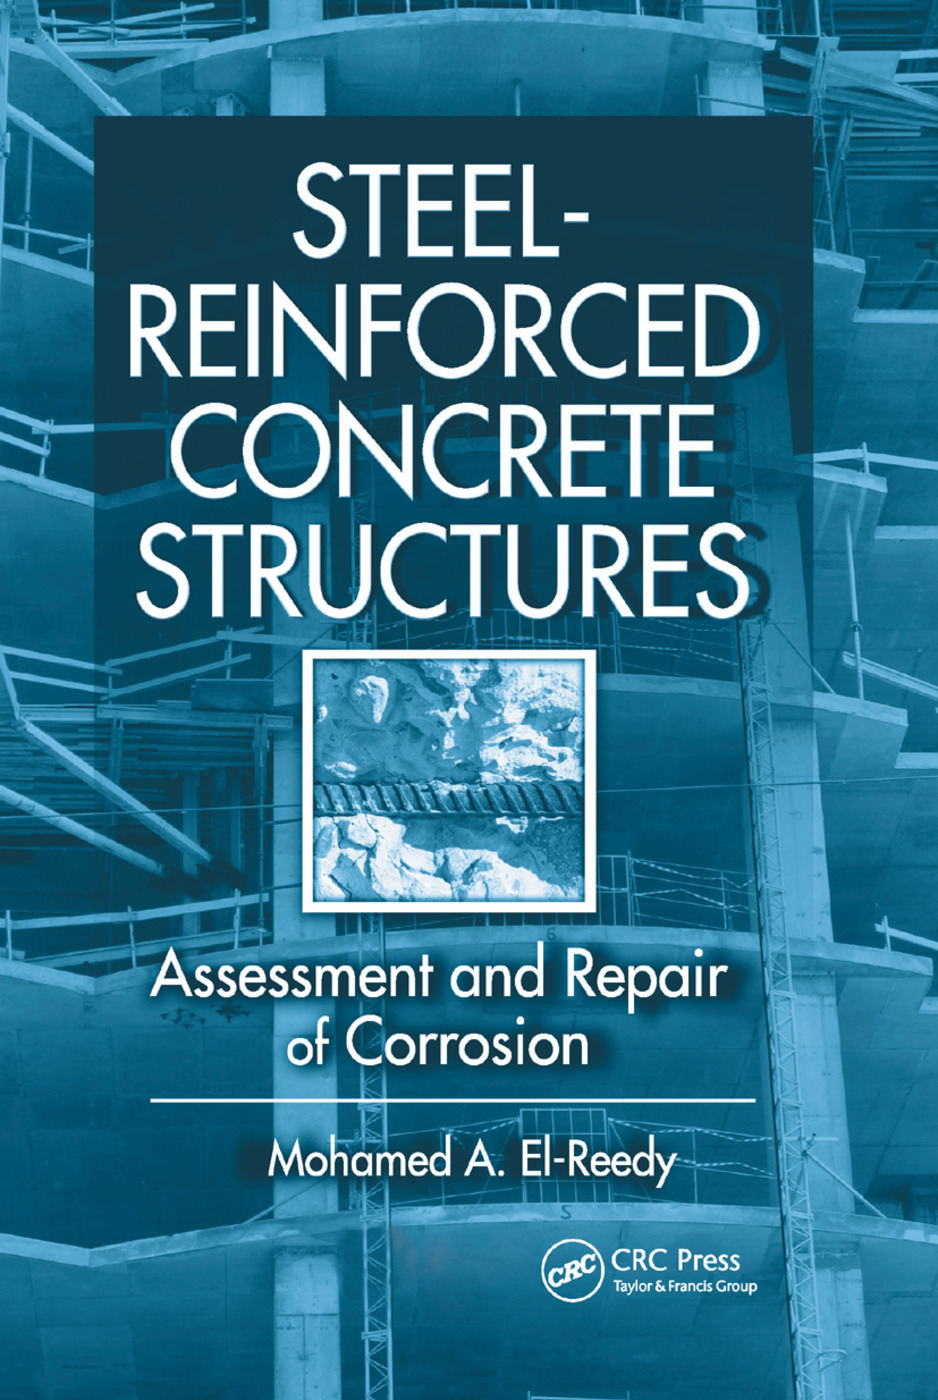 Steel-Reinforced Concrete Structures: Assessment and Repair of Corrosion, 1st Edition (Paperback) book cover